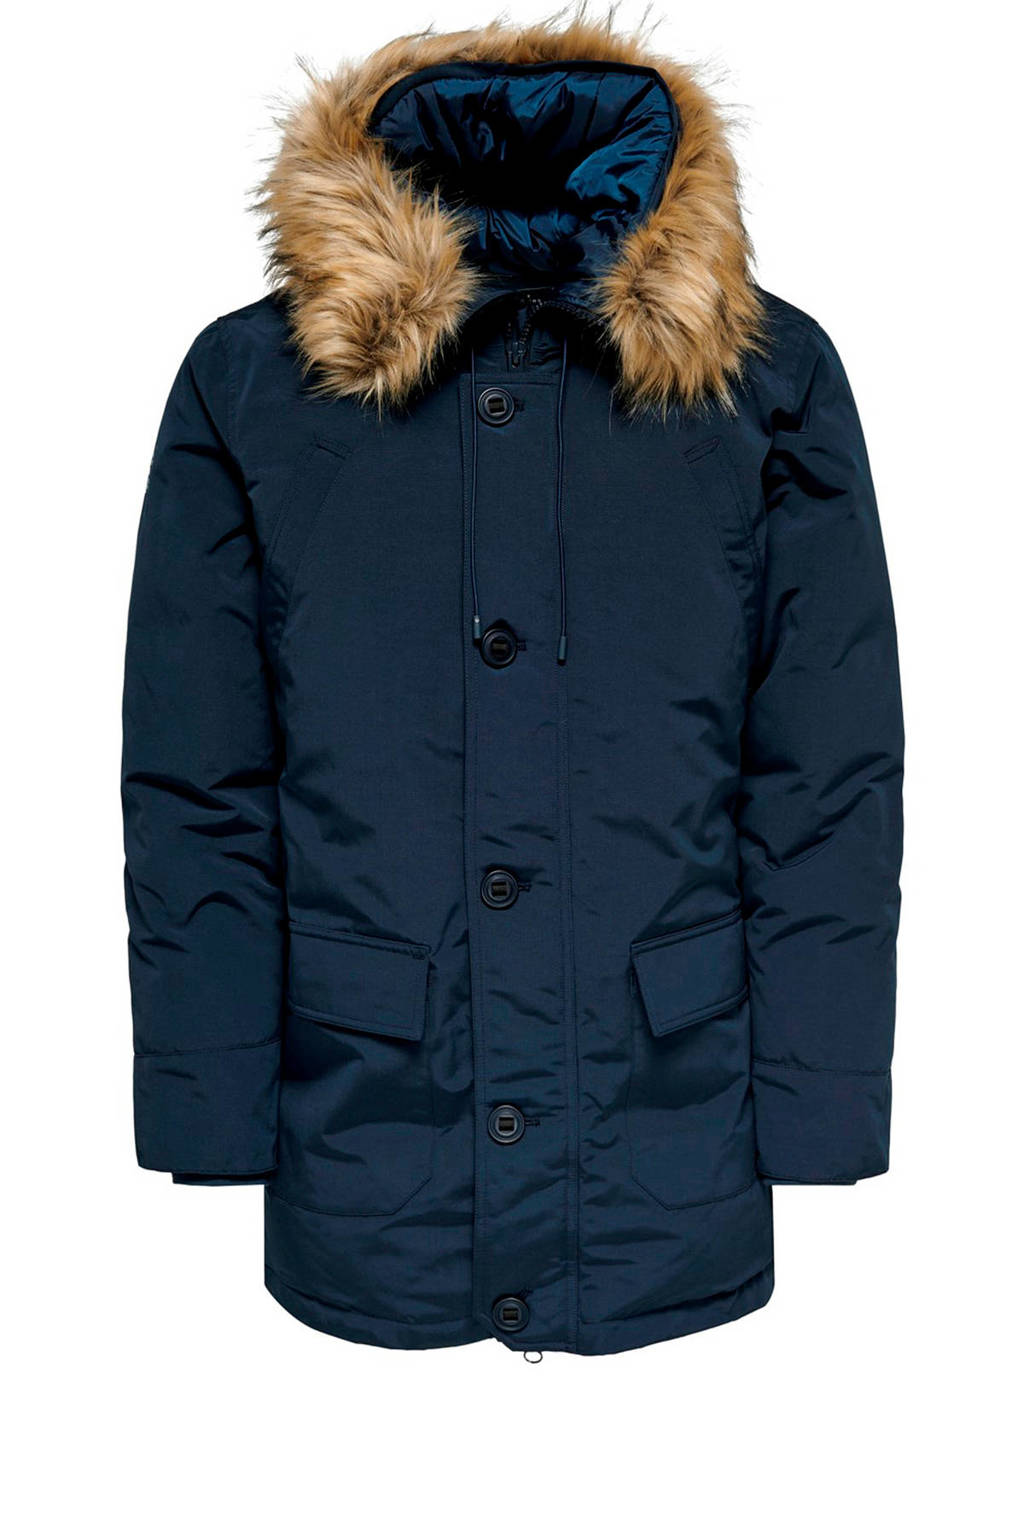 ONLY & SONS parka donkerblauw, Donkerblauw